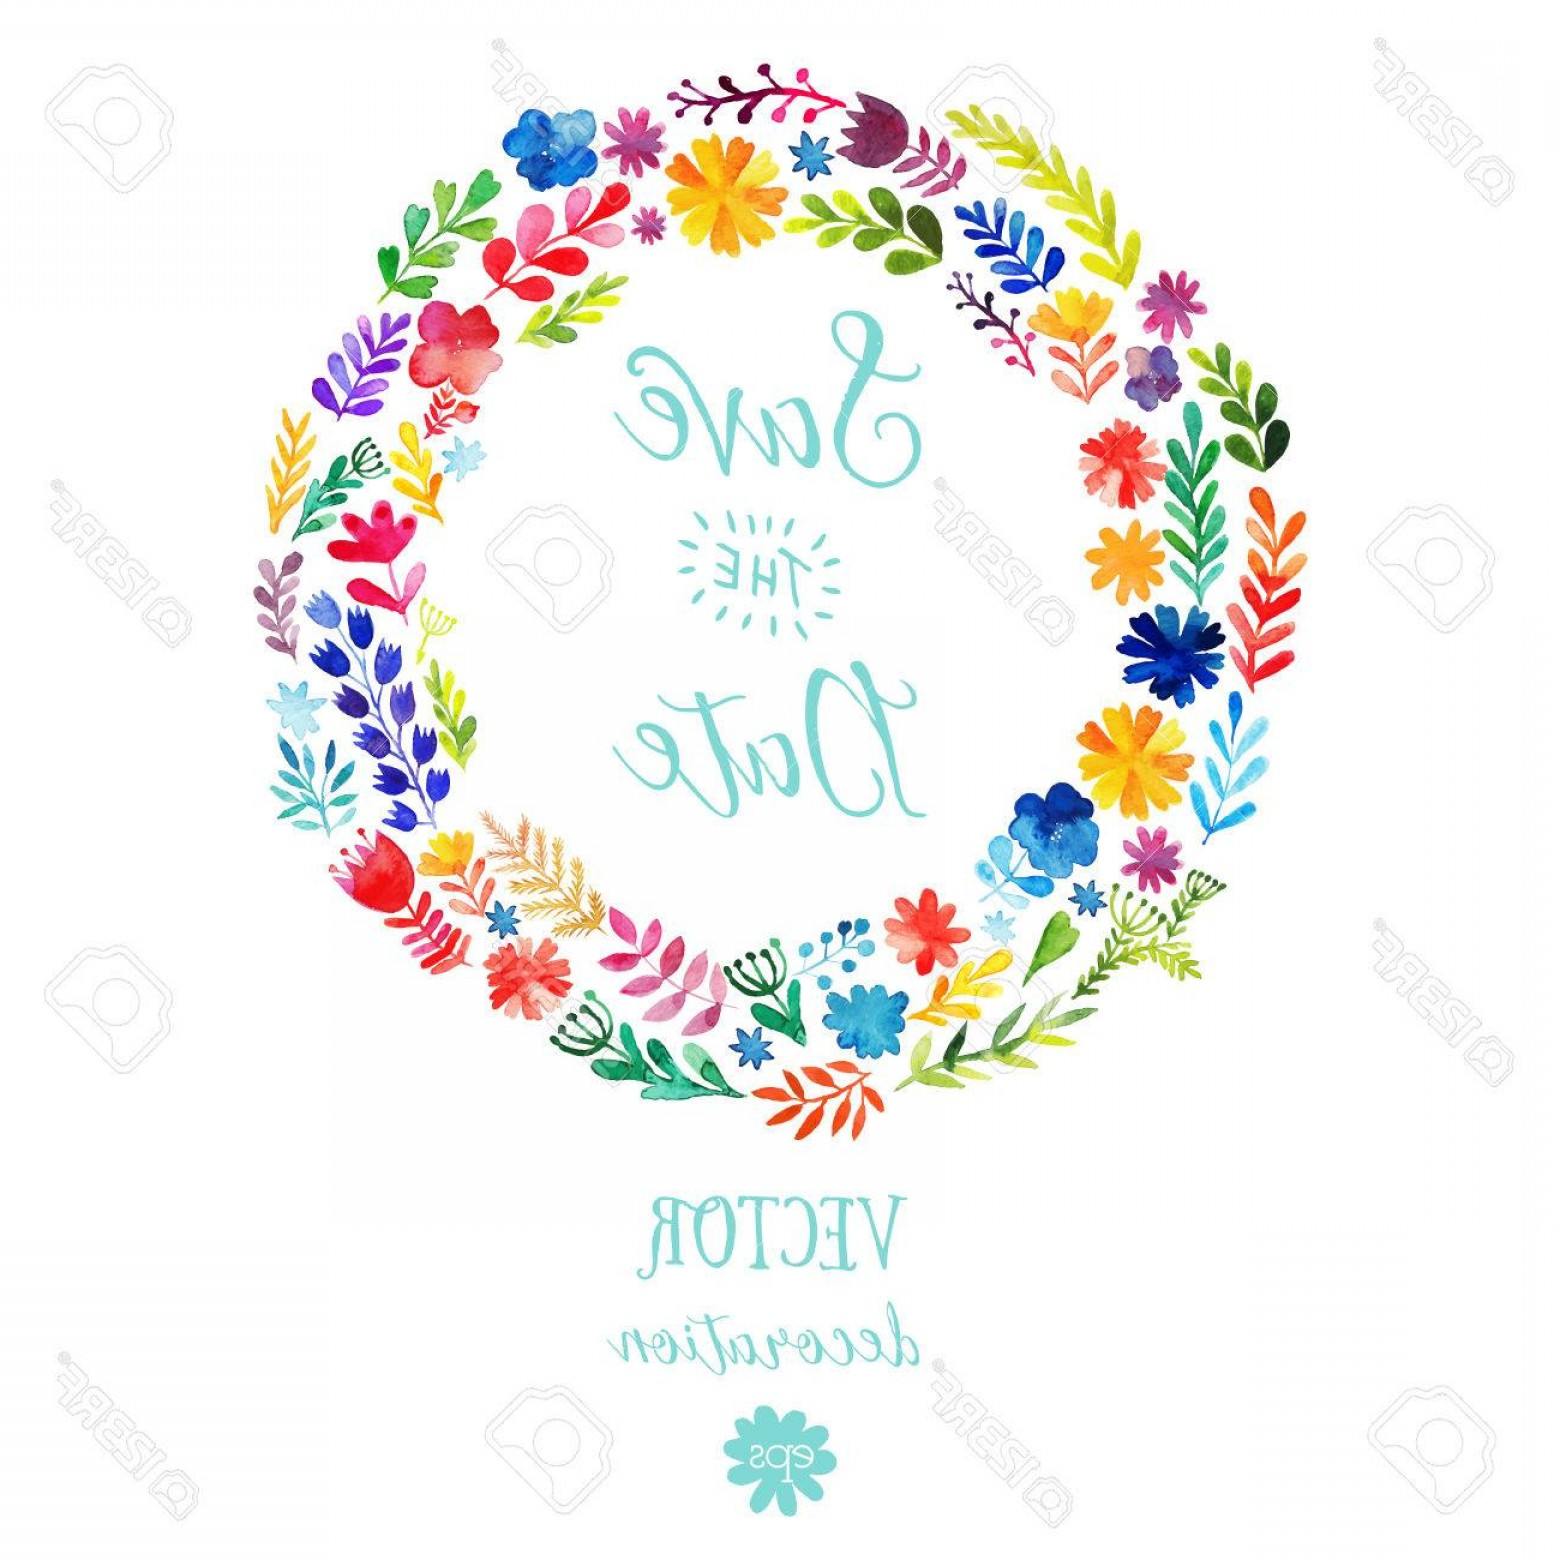 Summer Wreath Free Vector Watercolor: Photostock Vector Vector Watercolor Colorful Circular Floral Wreaths With Summer Flowers And Central White Copyspace F